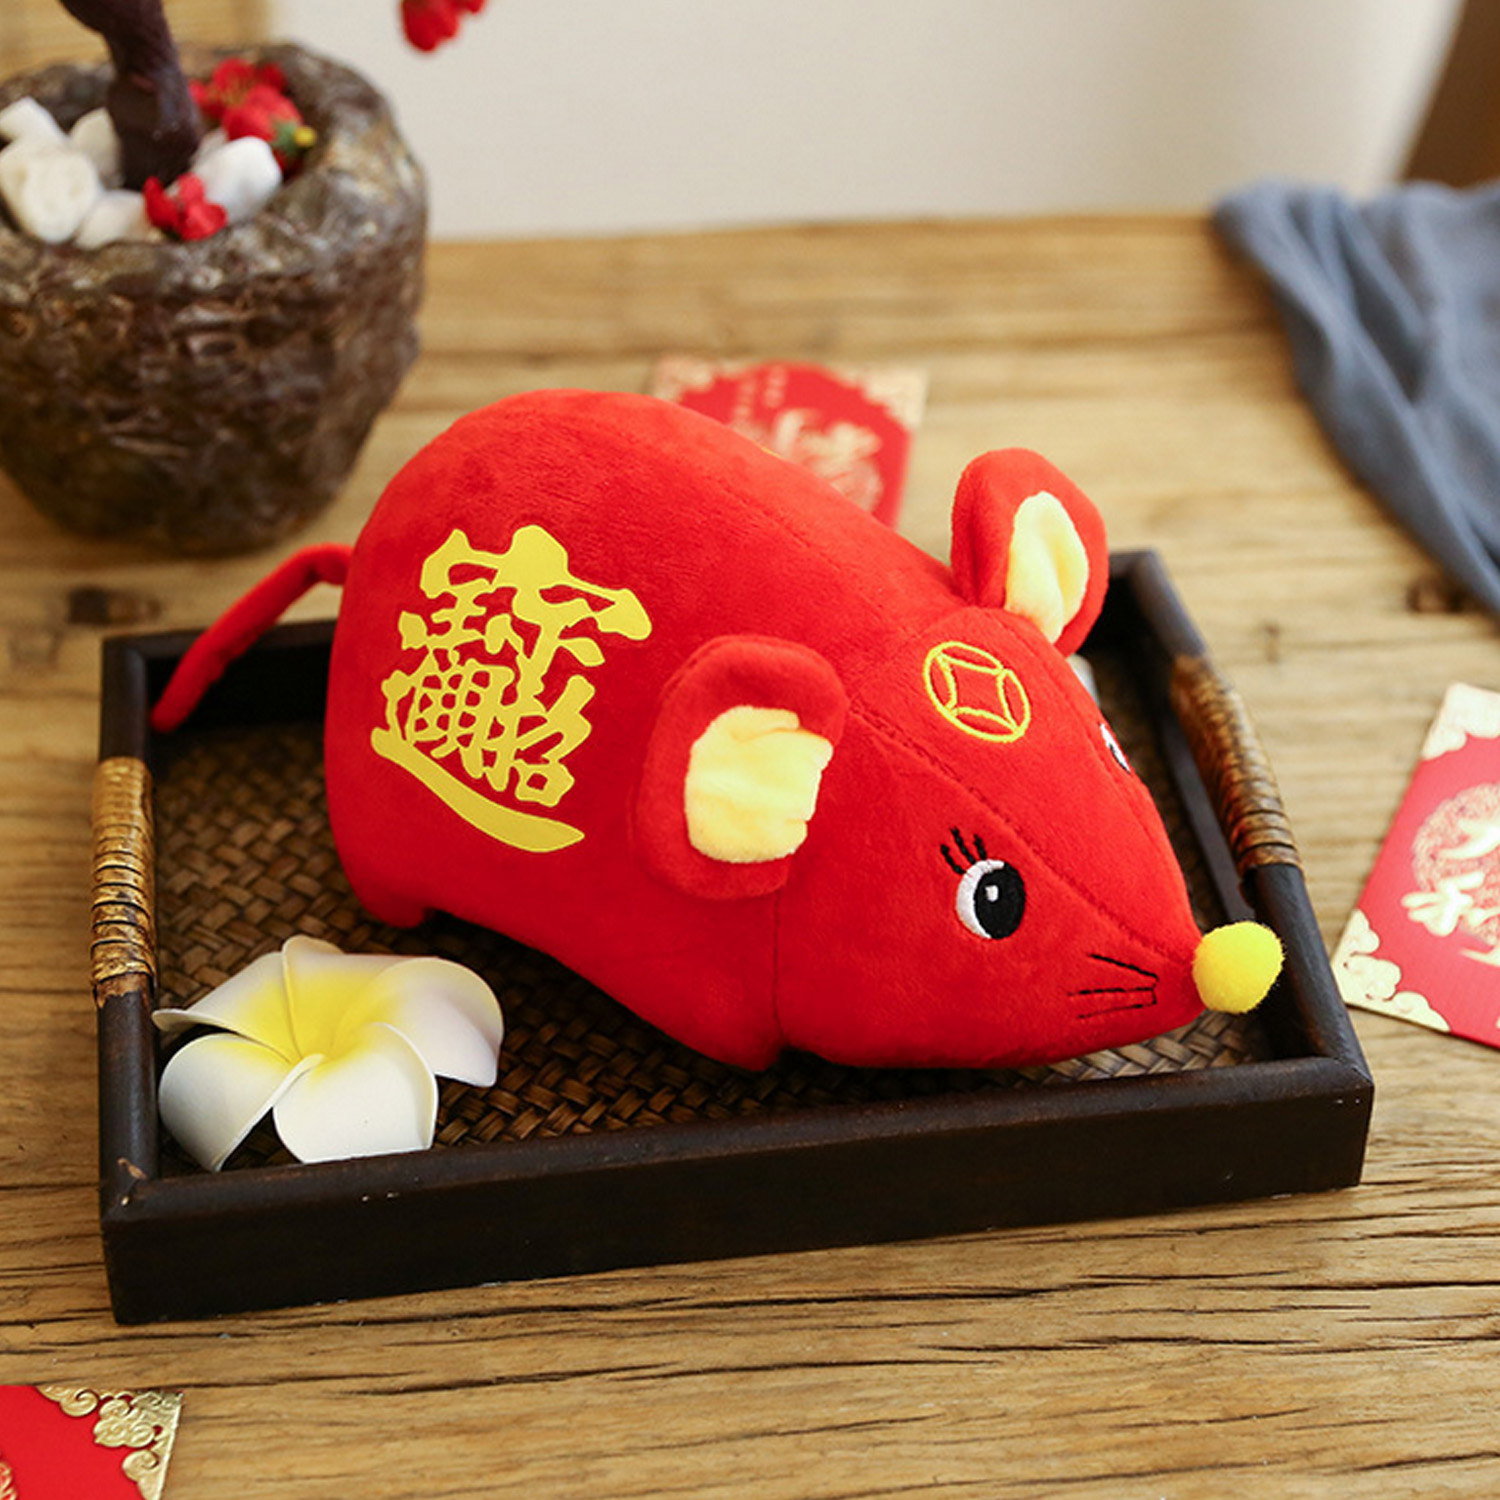 Cute Red Lucky Rat Plush Stuffed Doll Toy Home Party Decoration For 2020 Chinese New Year Spring Festival Gift 35cm Random Style